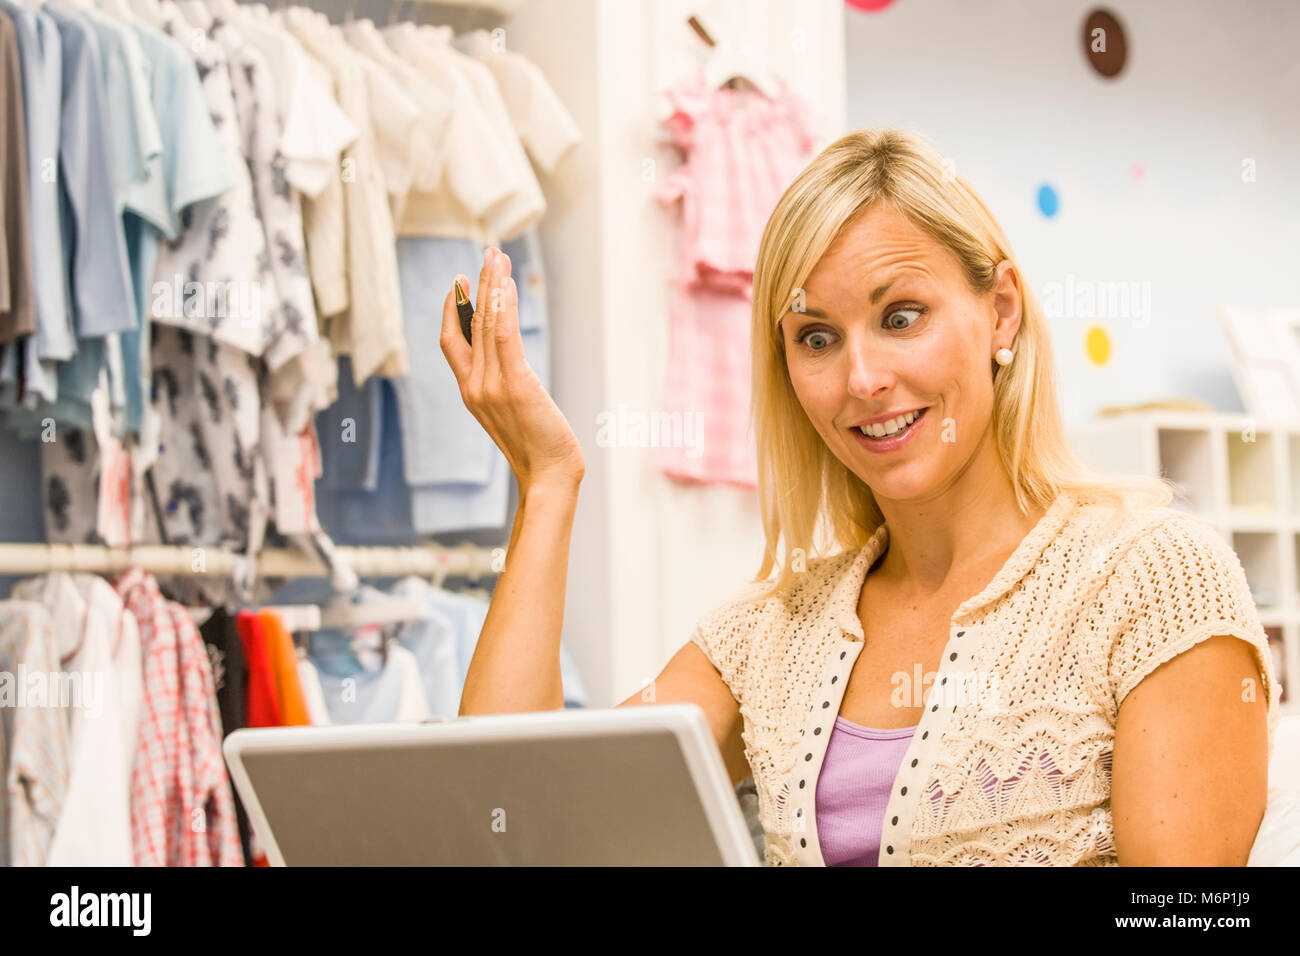 A woman working on a computer in her childrens clothing store looking as if she just realized something. - Stock Image